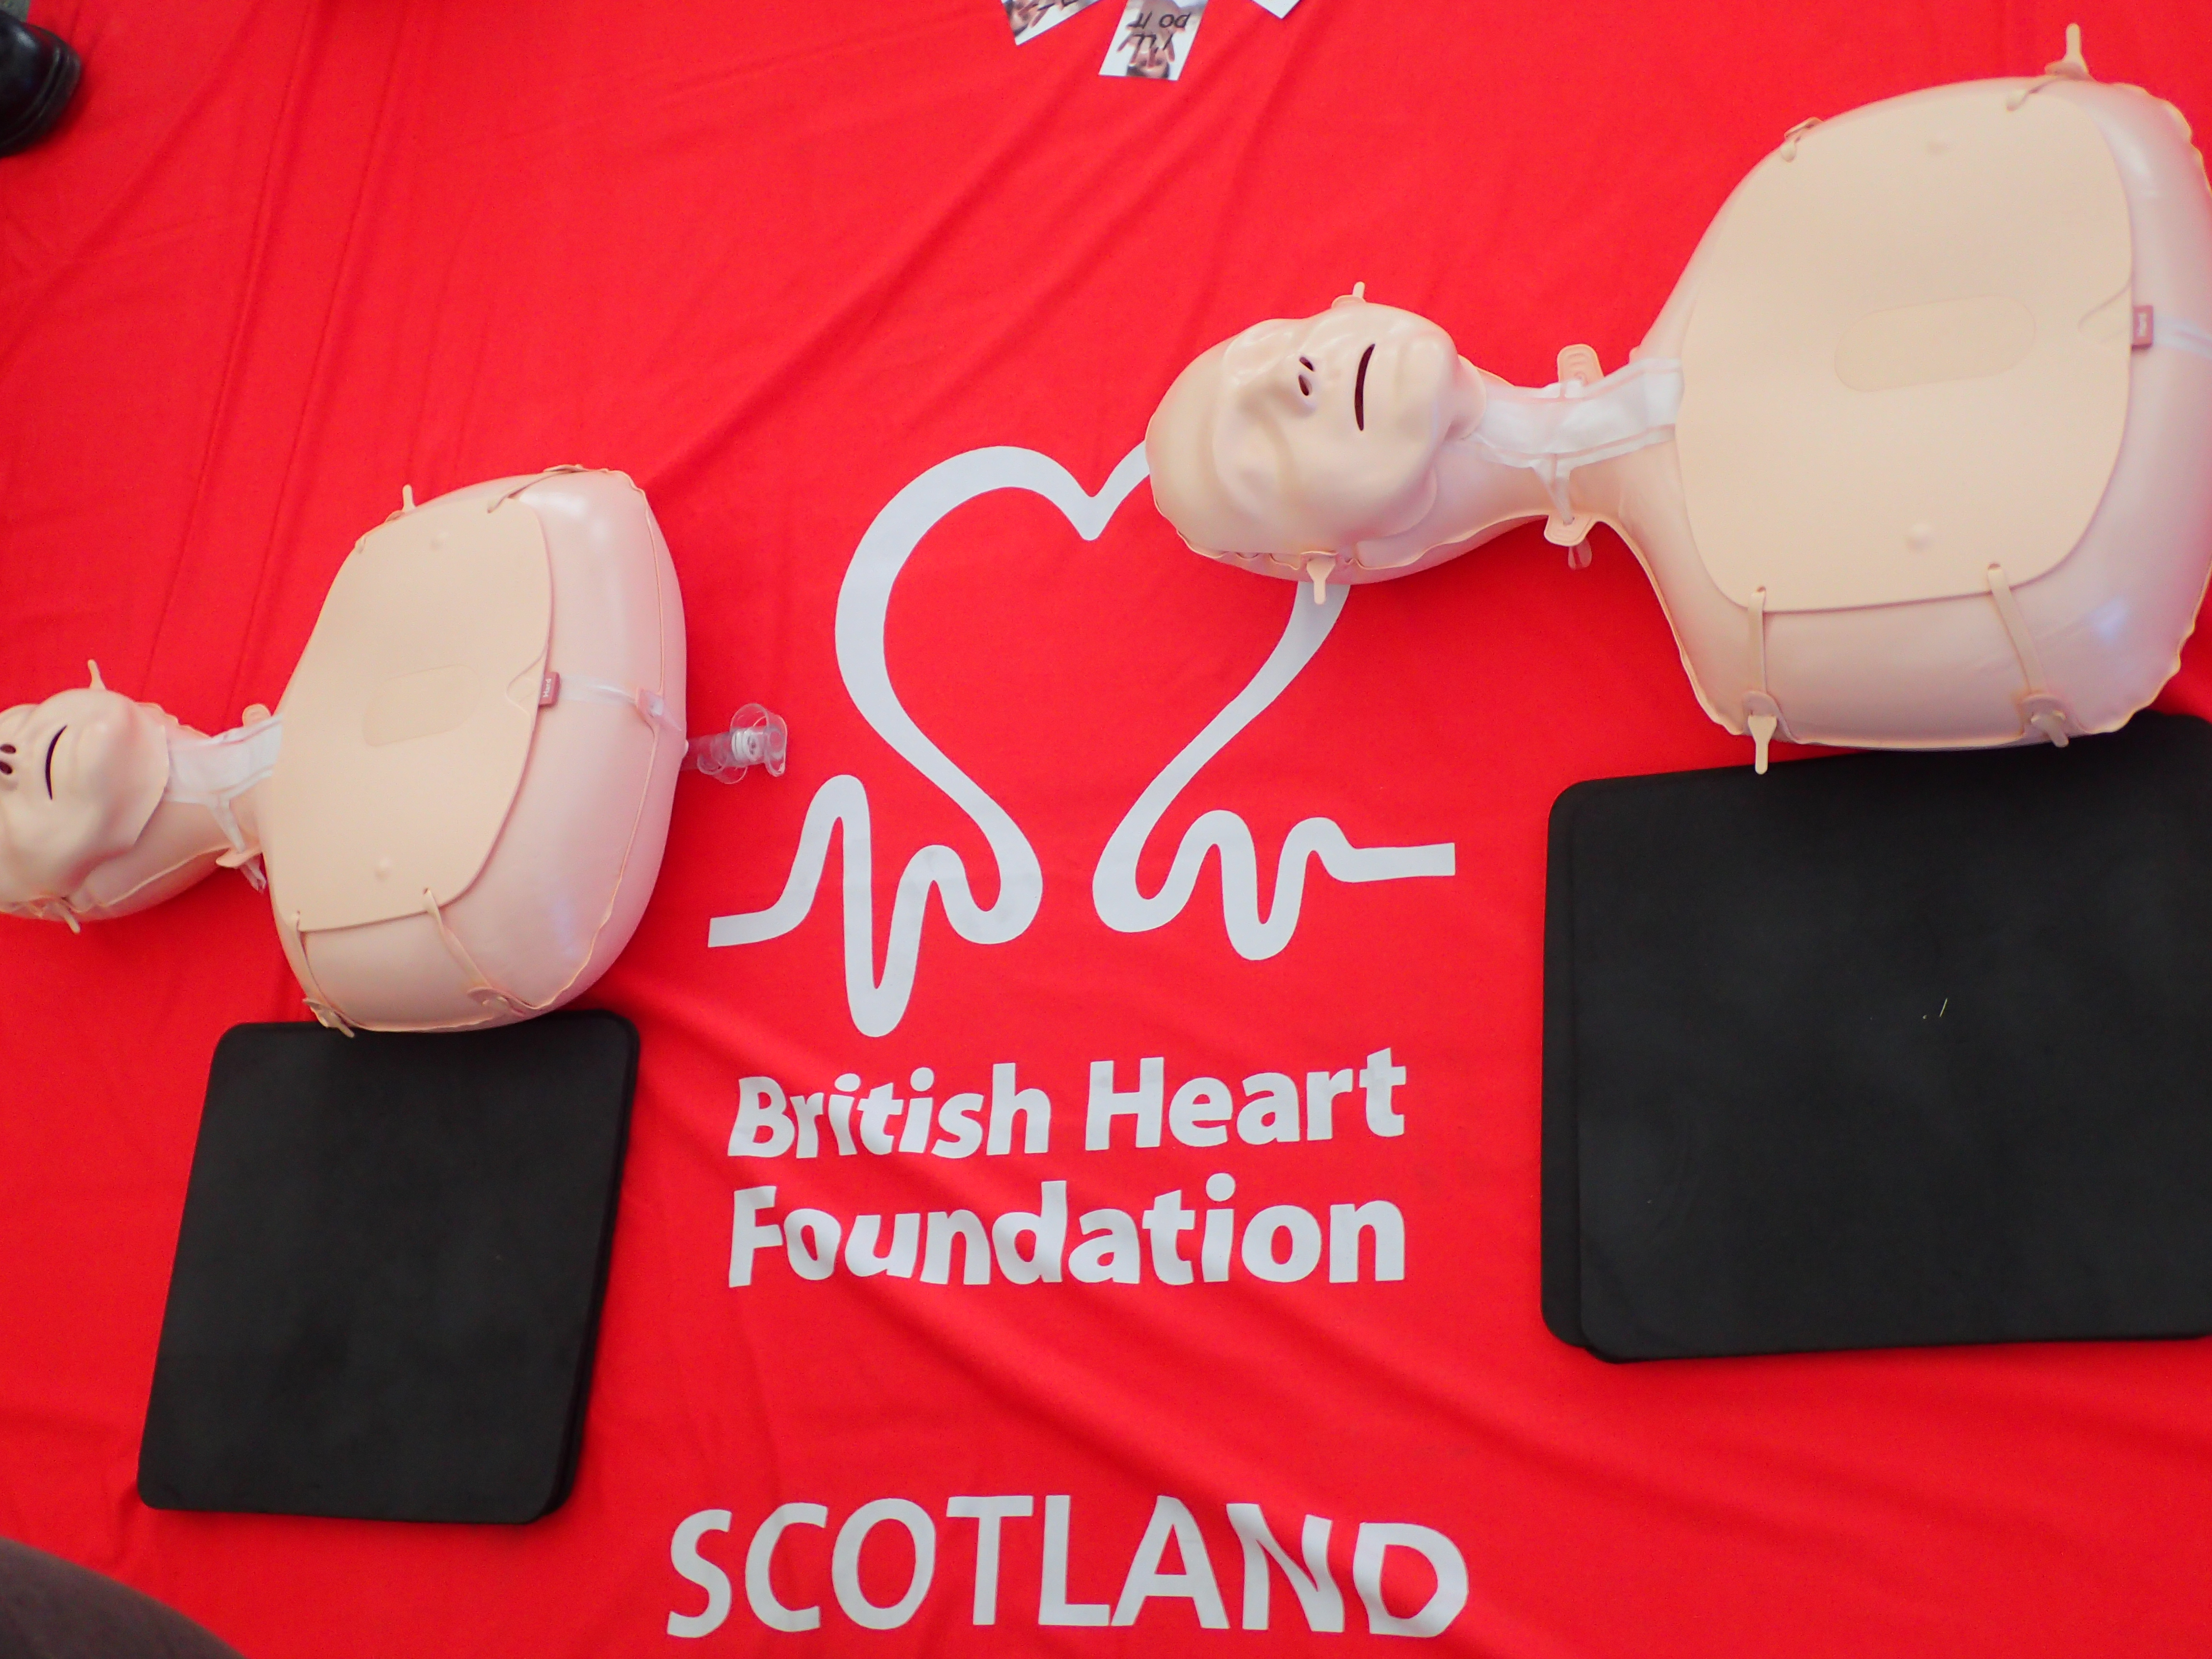 CPR events in East Lothian